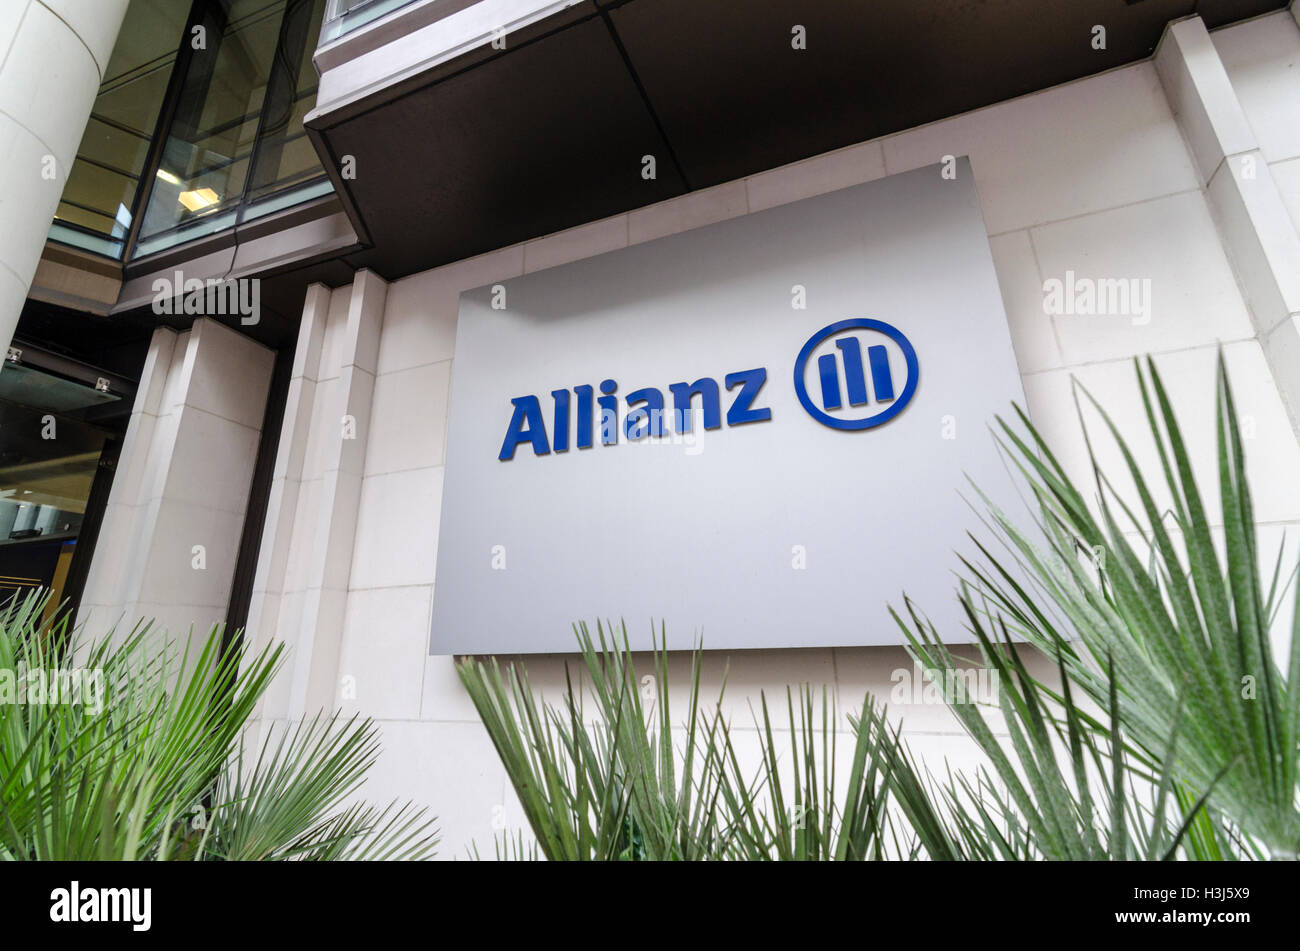 Allianz offices in the City of London, UK - Stock Image